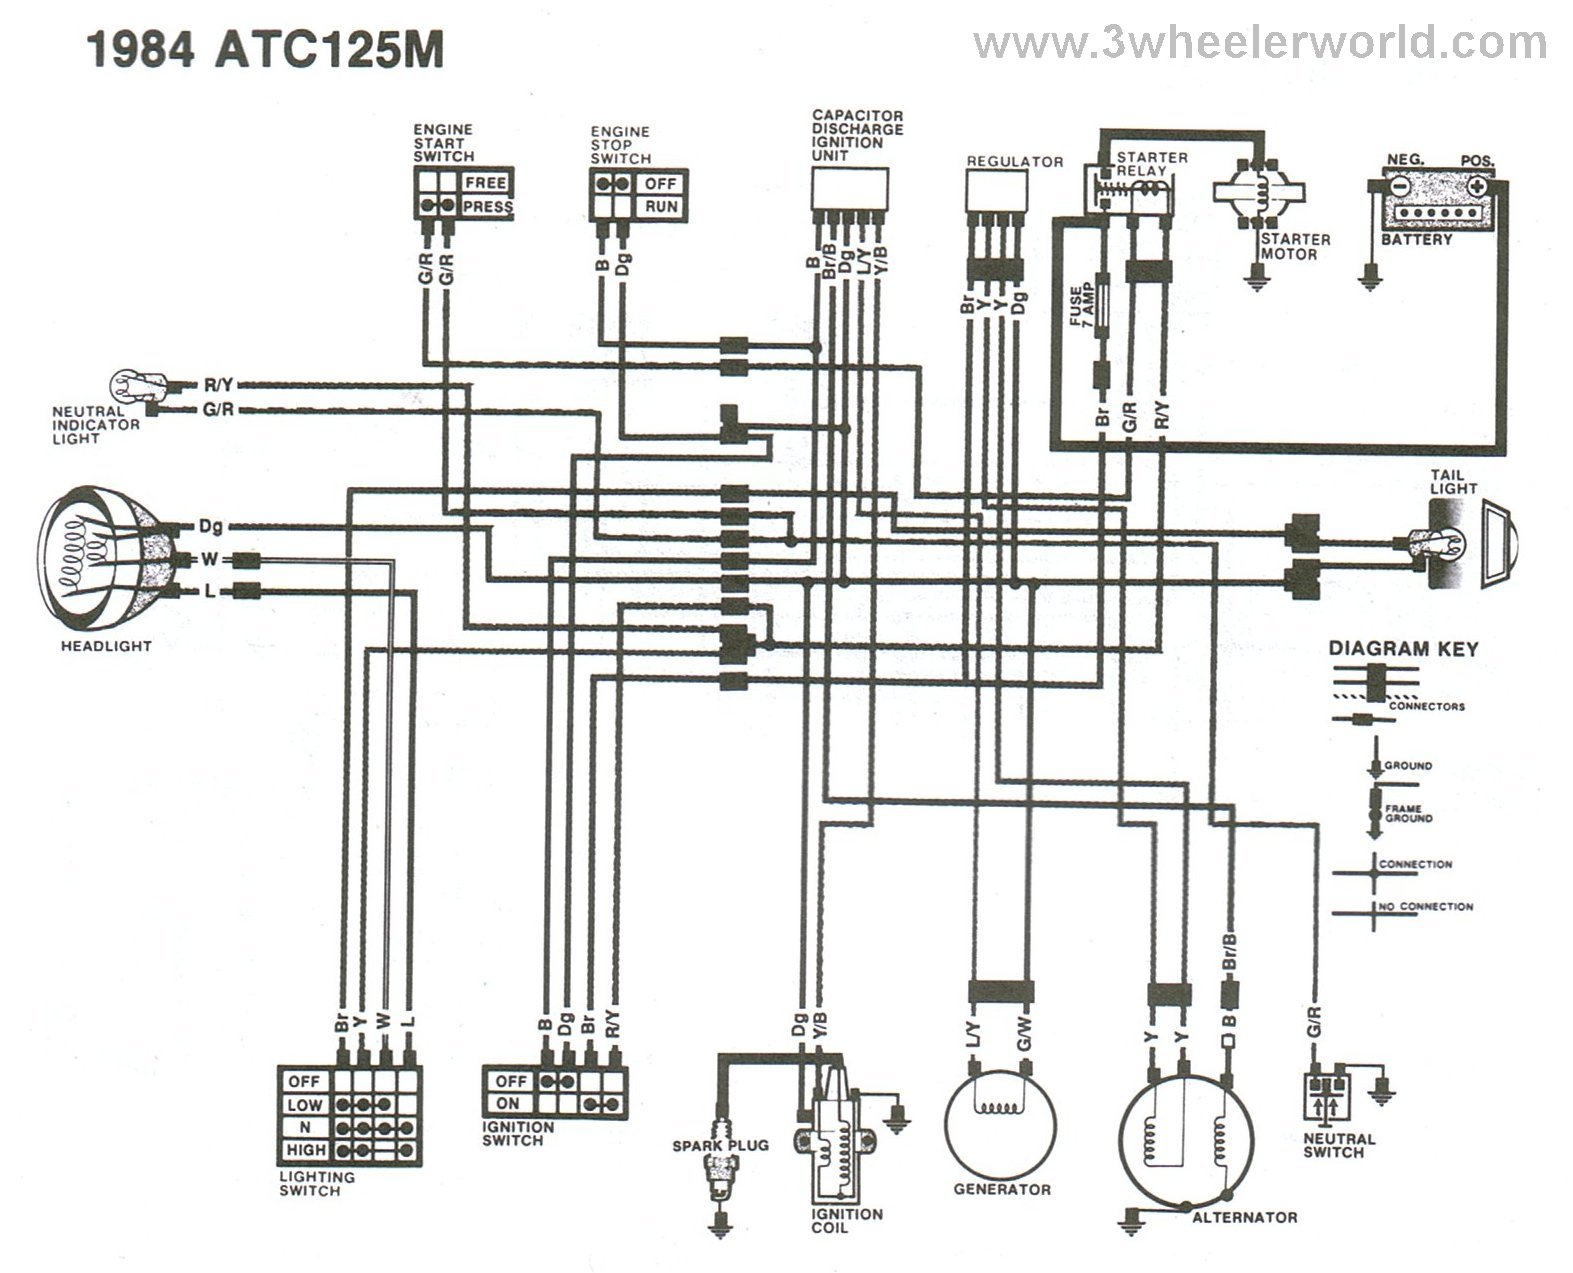 ATC125Mx84 3 wheeler world tech help honda wiring diagrams atc 300 wiring diagram at edmiracle.co